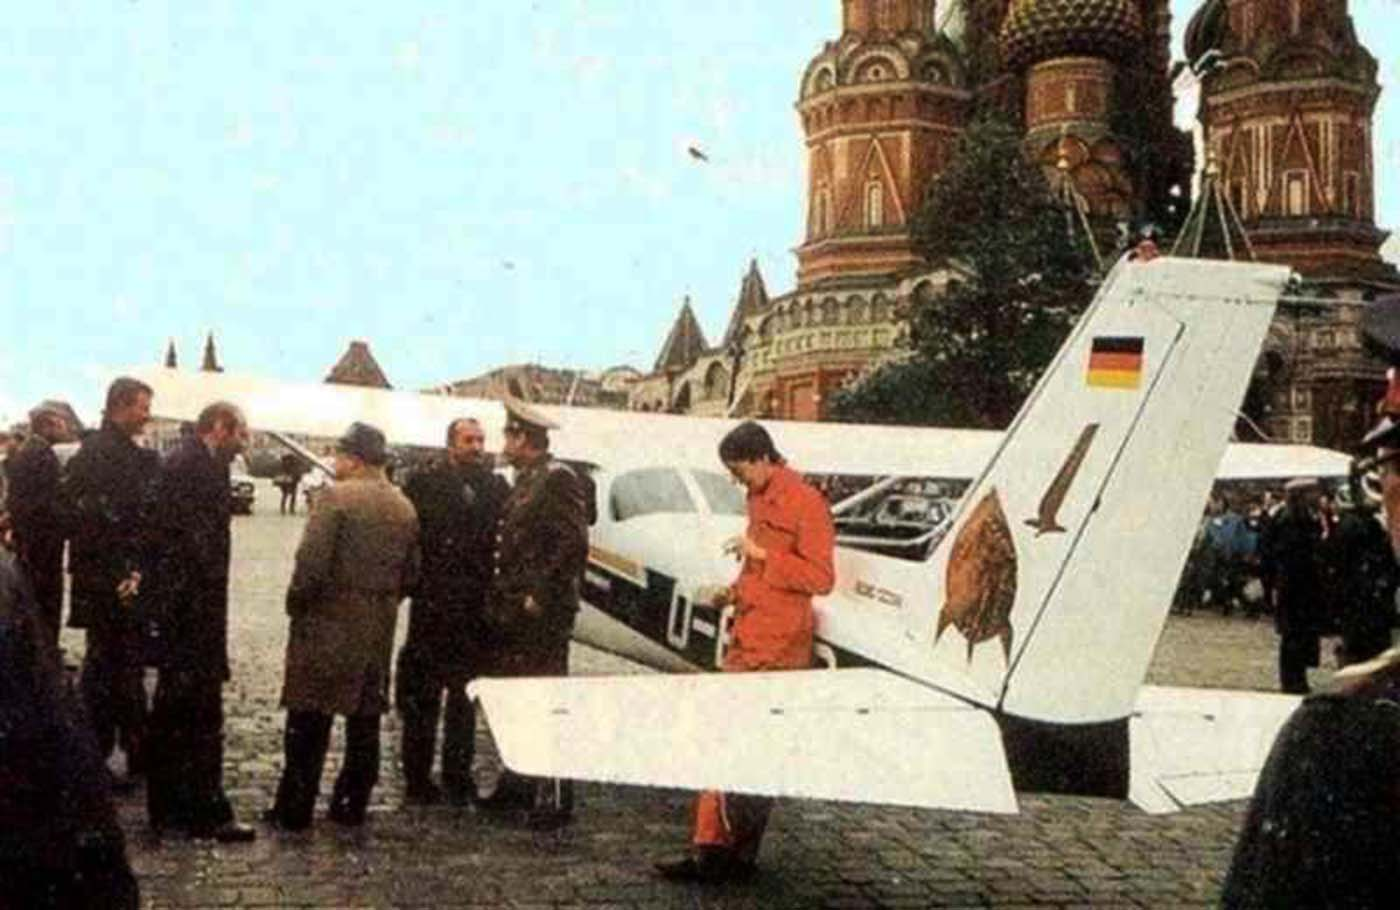 Rust's Cessna 172, resting near Red Square some time after his landing. Rust is standing on the right in the photo, wearing colored overalls.